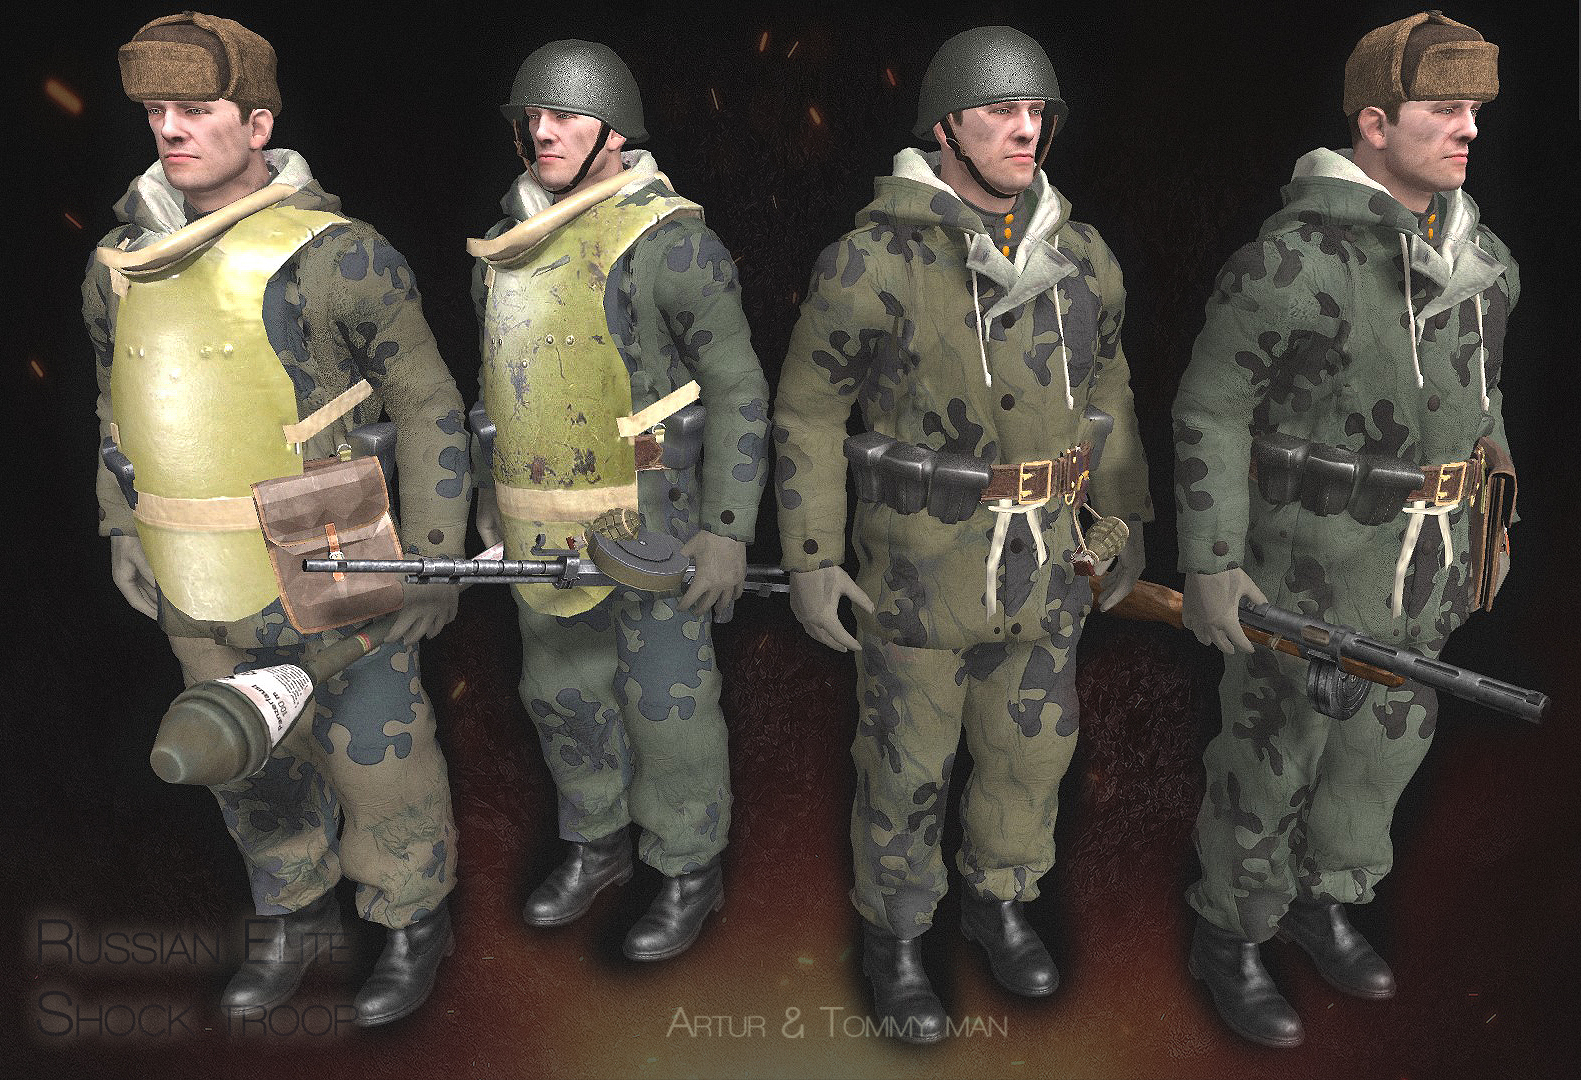 russian elite shock assault troops, models budapest siege, mod, game